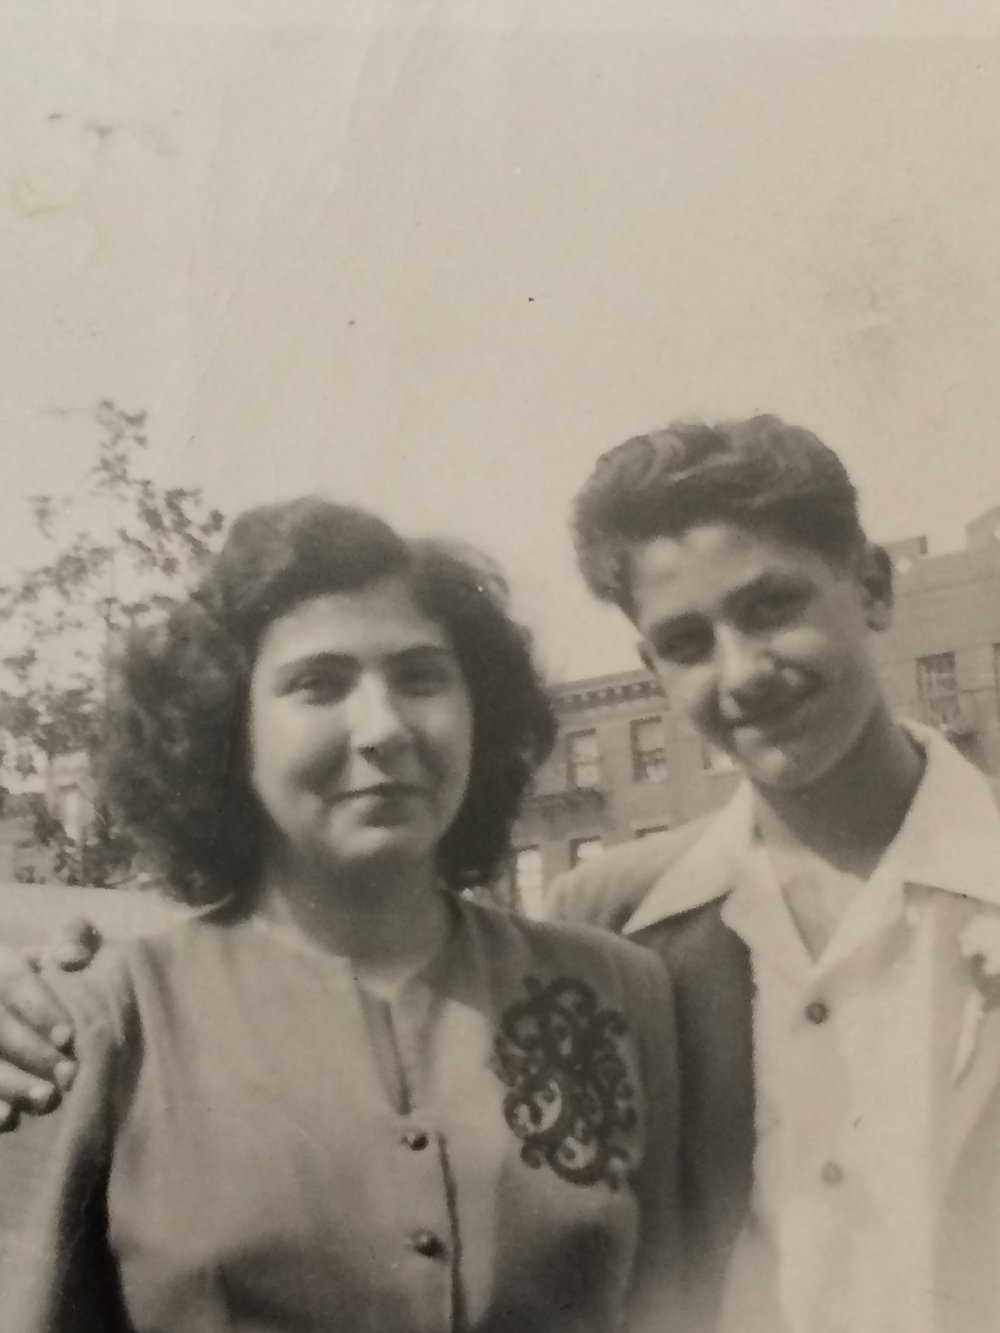 Nonna and one of her brothers.